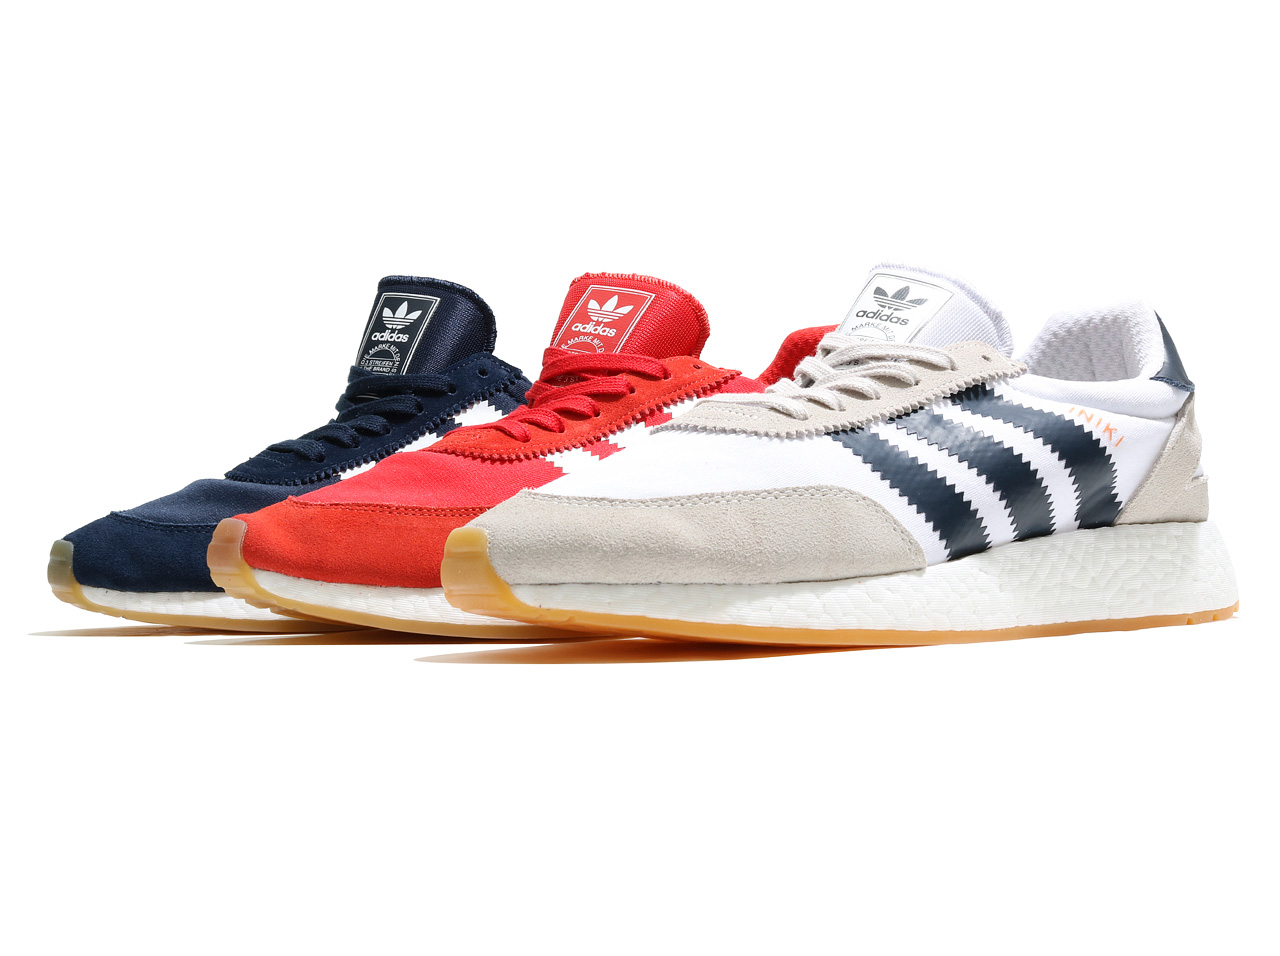 adidas_inikirunner_by9728_by9729_by9722